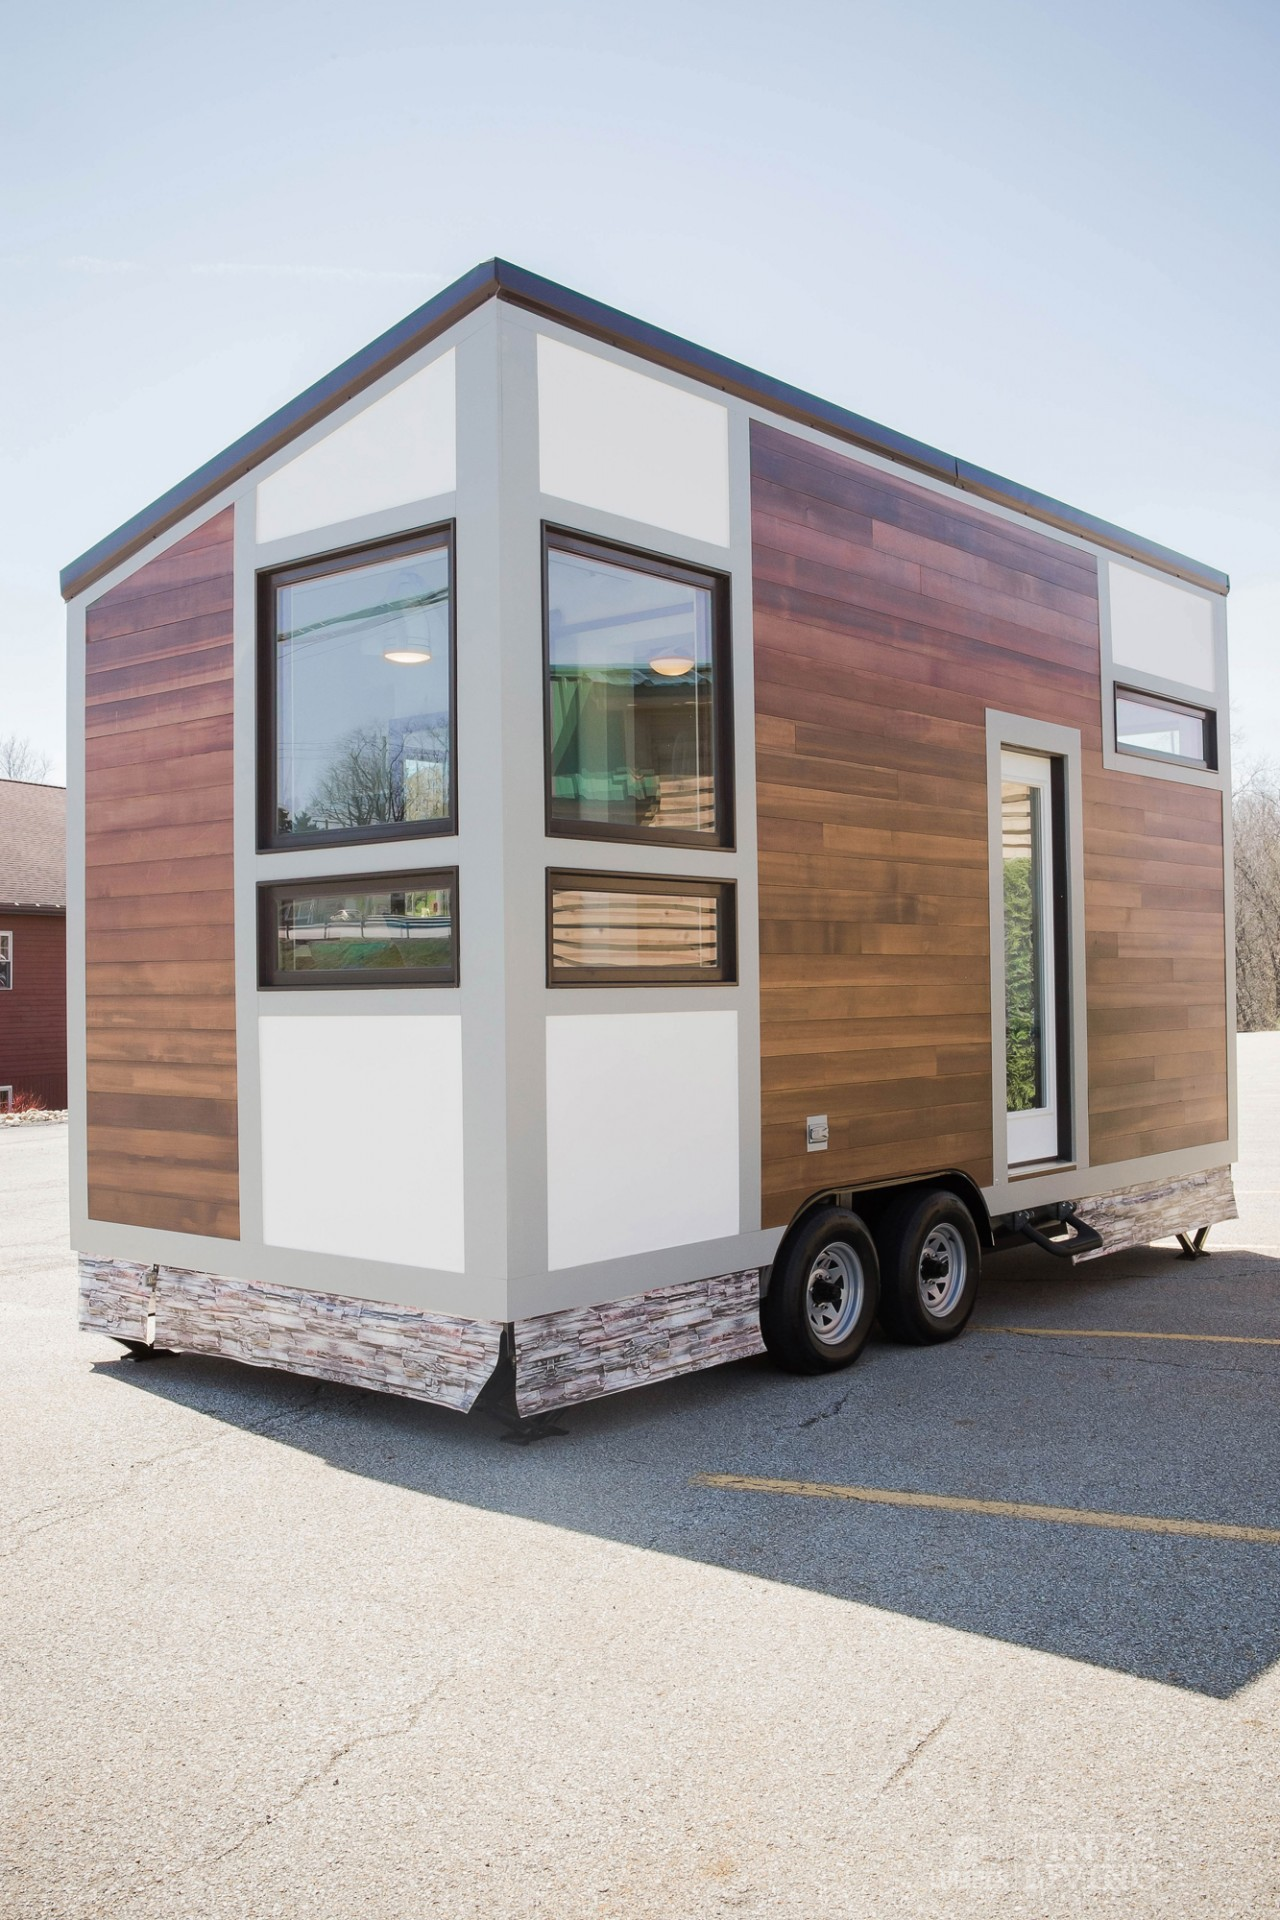 The Degsy 84 Tiny Houses